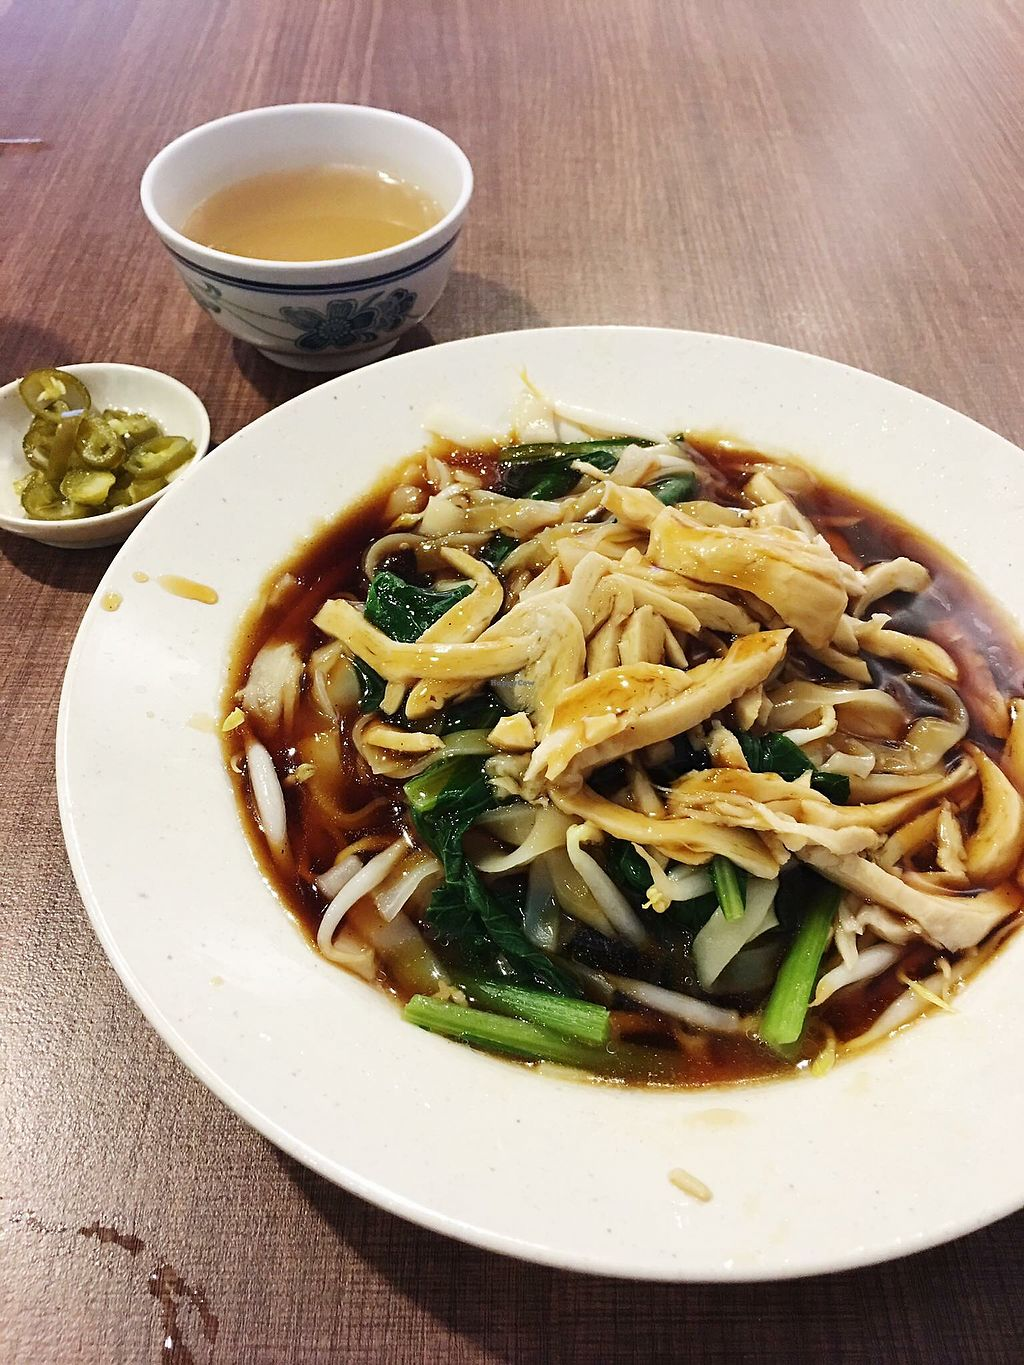 "Photo of Zhenyi Veggie Place  by <a href=""/members/profile/CherylQuincy"">CherylQuincy</a> <br/>Ipoh Horfun <br/> January 17, 2018  - <a href='/contact/abuse/image/4403/347393'>Report</a>"